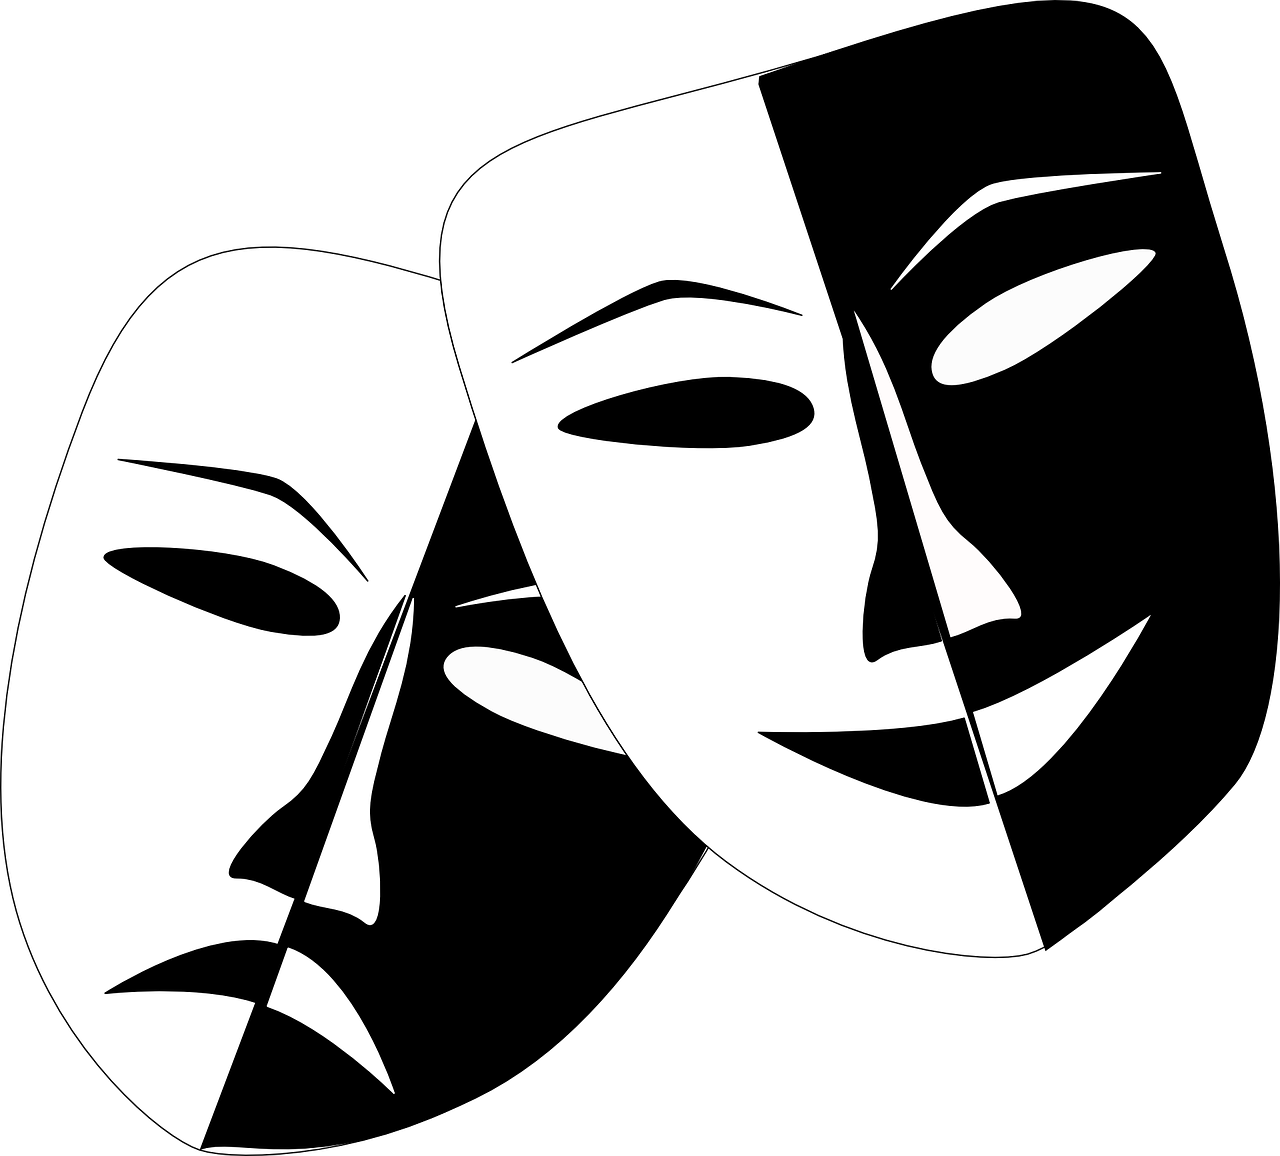 Star clipart black and white drama clip art black and white stock One Act Drama Festival returns to Rossmore | westcorktimes.com clip art black and white stock